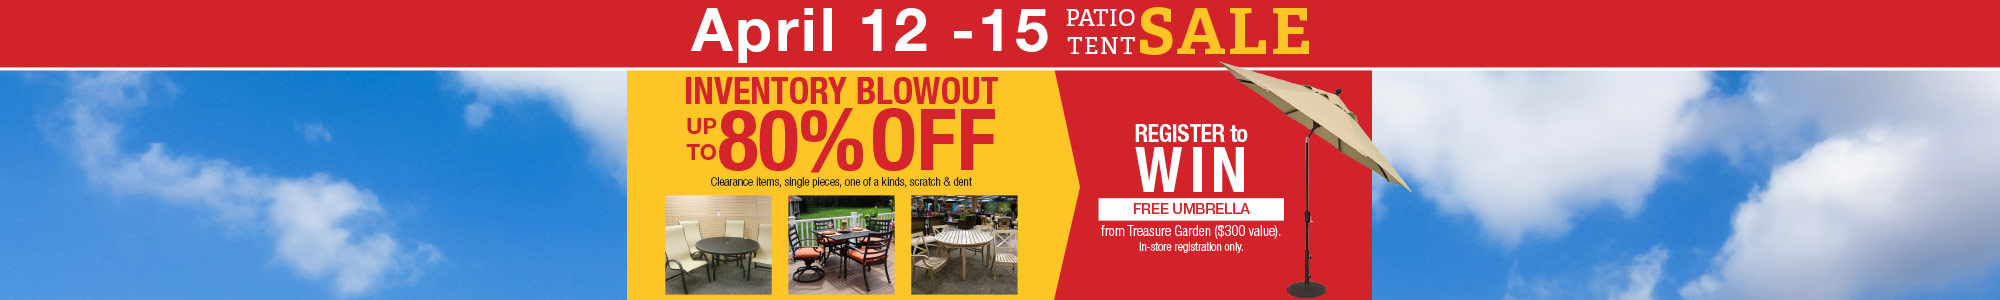 Patio Tent Sale April 12-15 Inventory Blowout up to 80% off